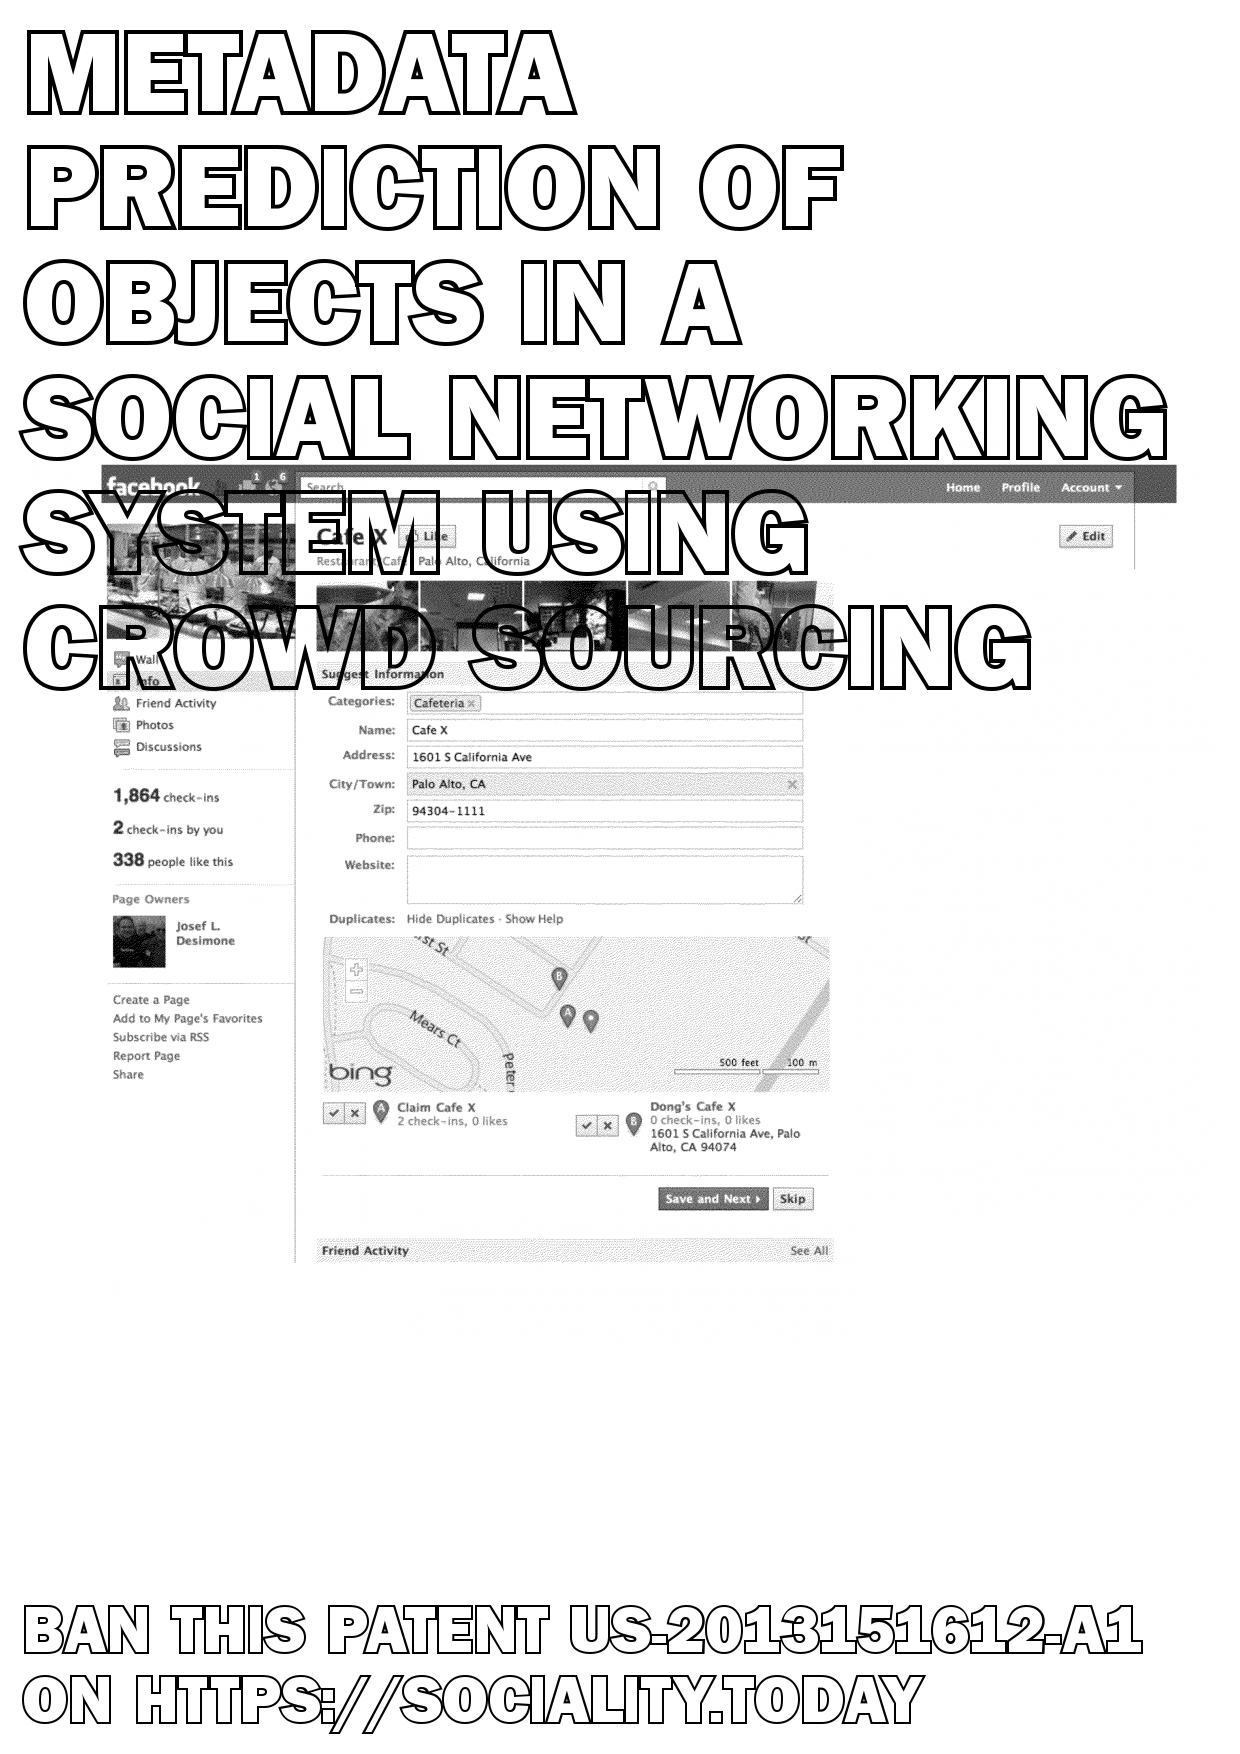 Metadata Prediction of Objects in a Social Networking System Using Crowd Sourcing  - US-2013151612-A1